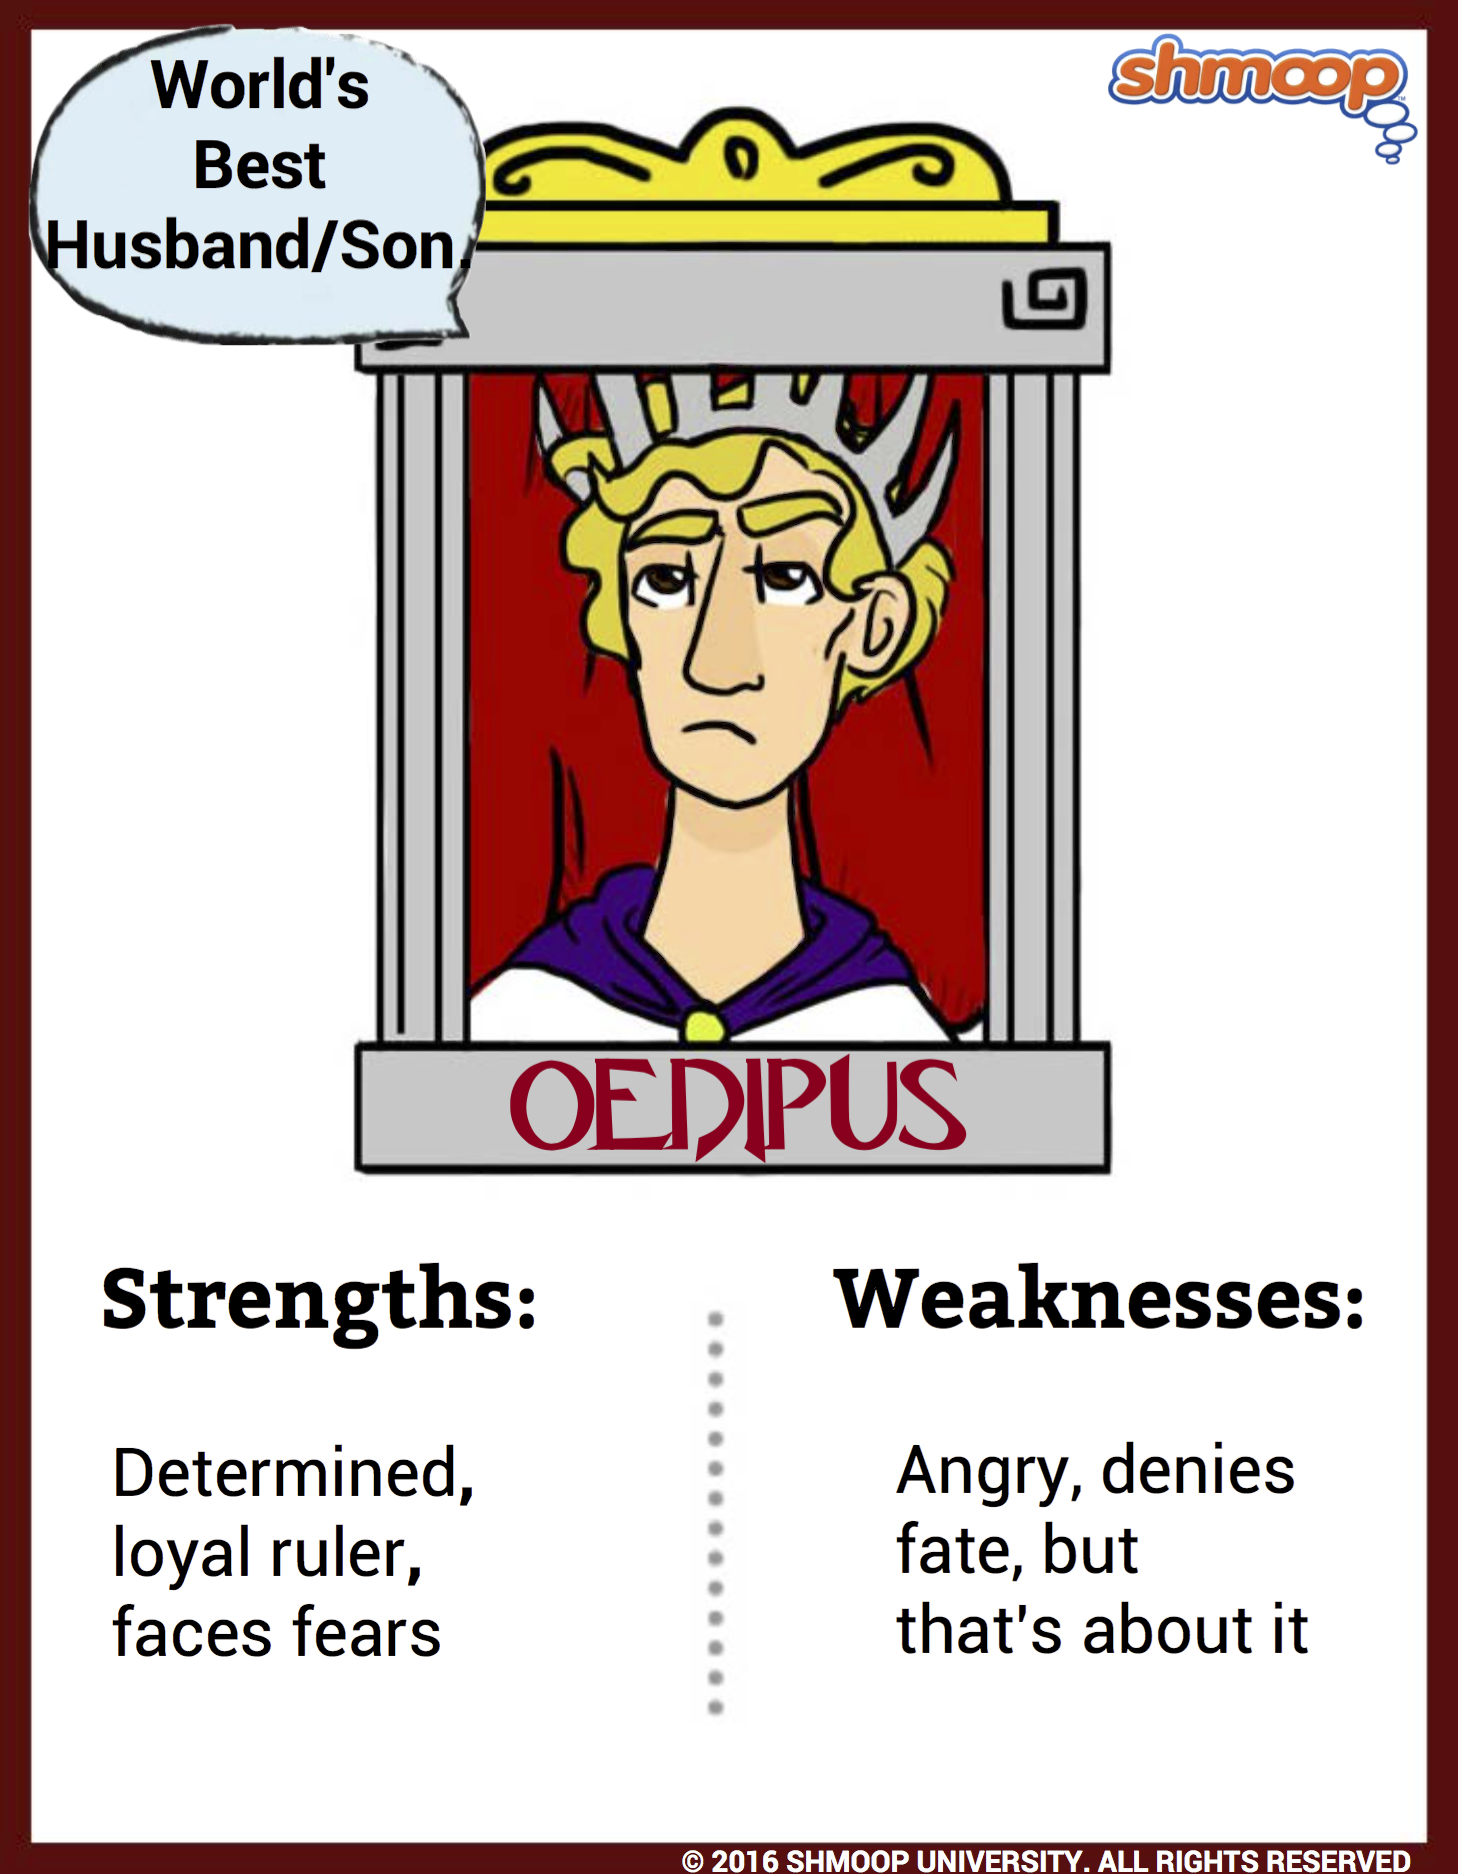 https://media1.shmoop.com/images/chart/Oedipus-the-King-2/oedipus.png